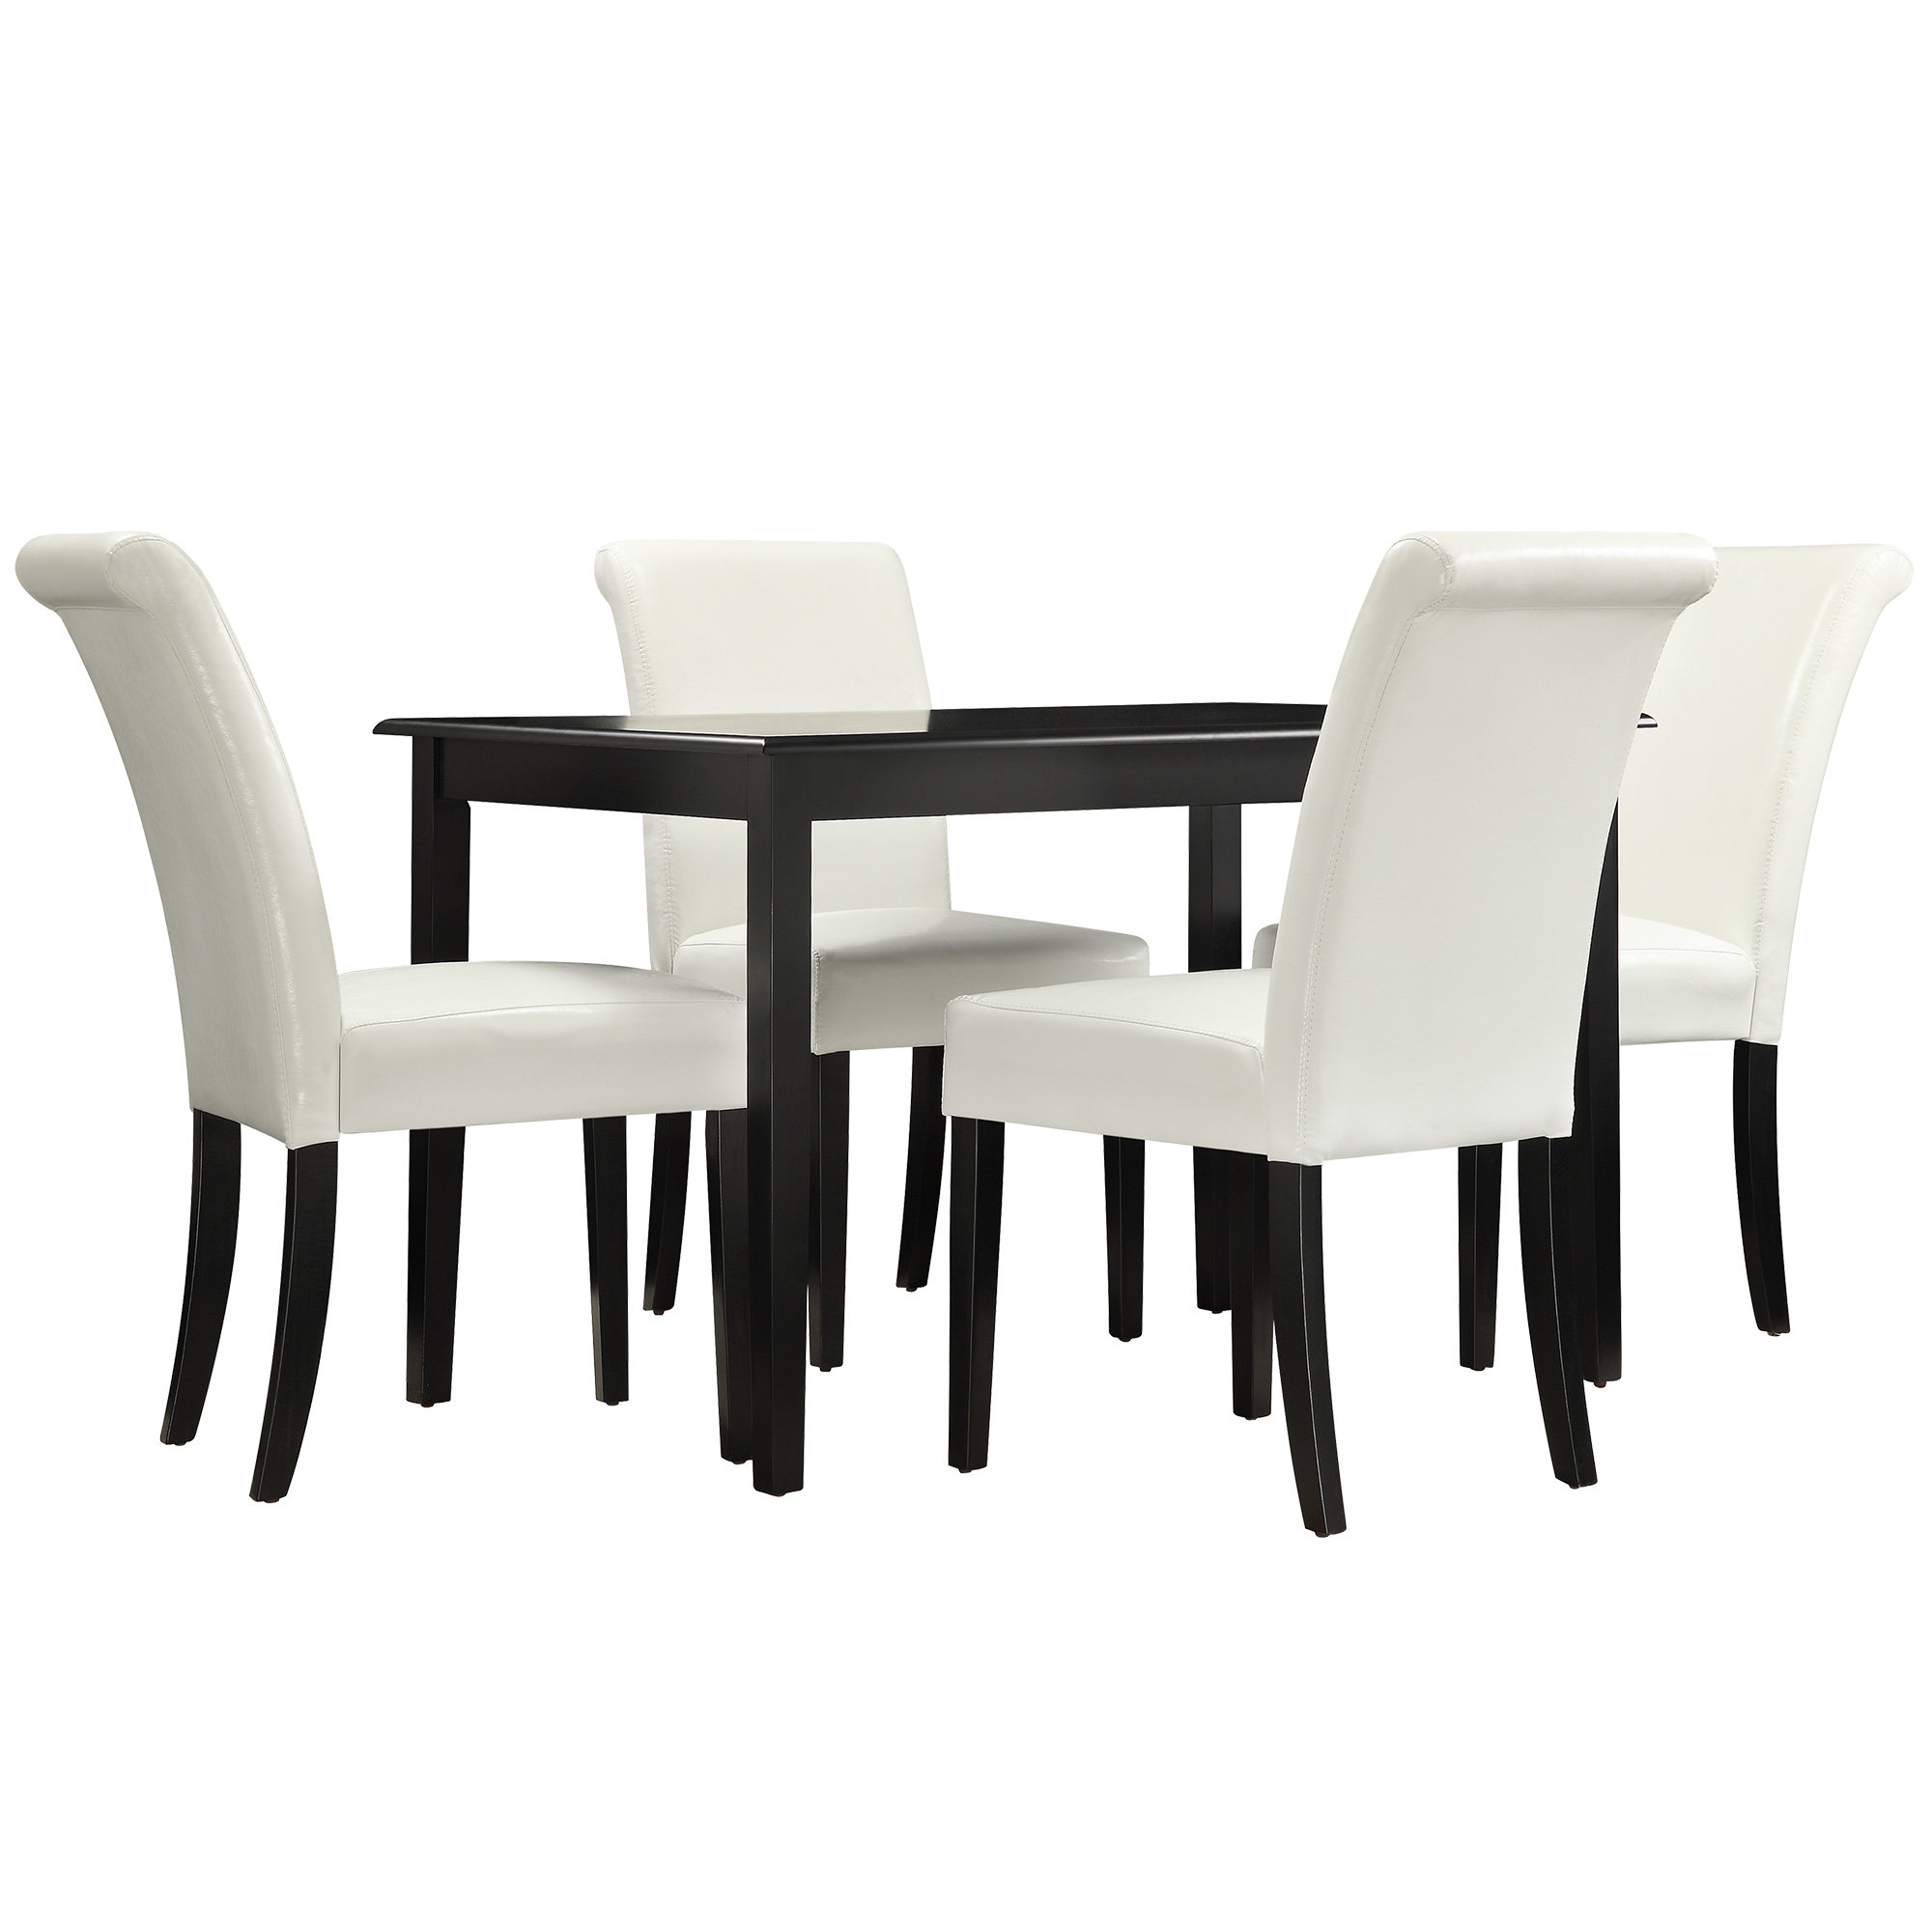 Nordstrom 5 Piece Dining Set With Most Up To Date Anette 3 Piece Counter Height Dining Sets (Photo 9 of 20)